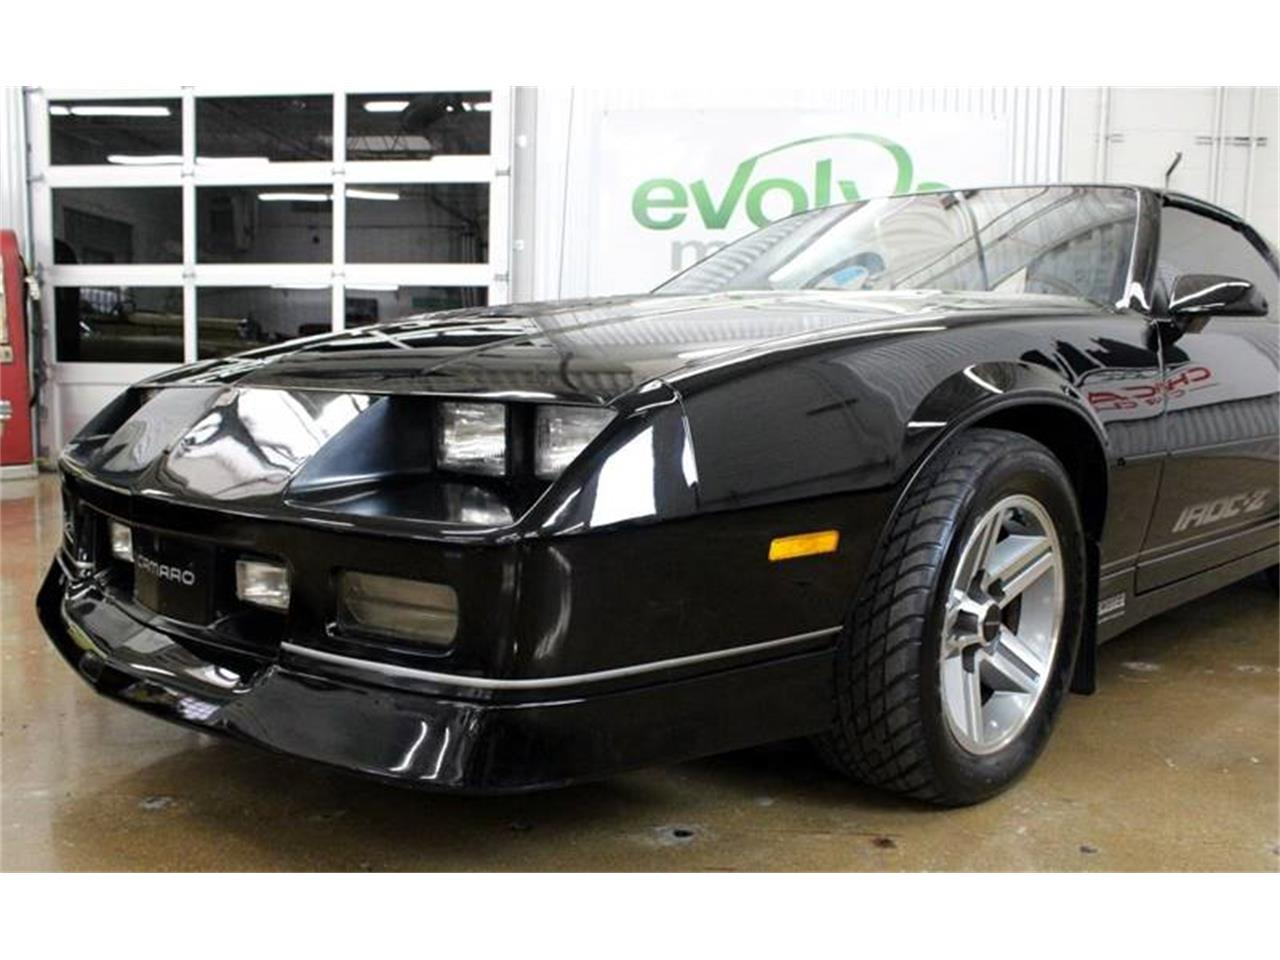 Large Picture of '85 Chevrolet Camaro - $18,900.00 - MB2C